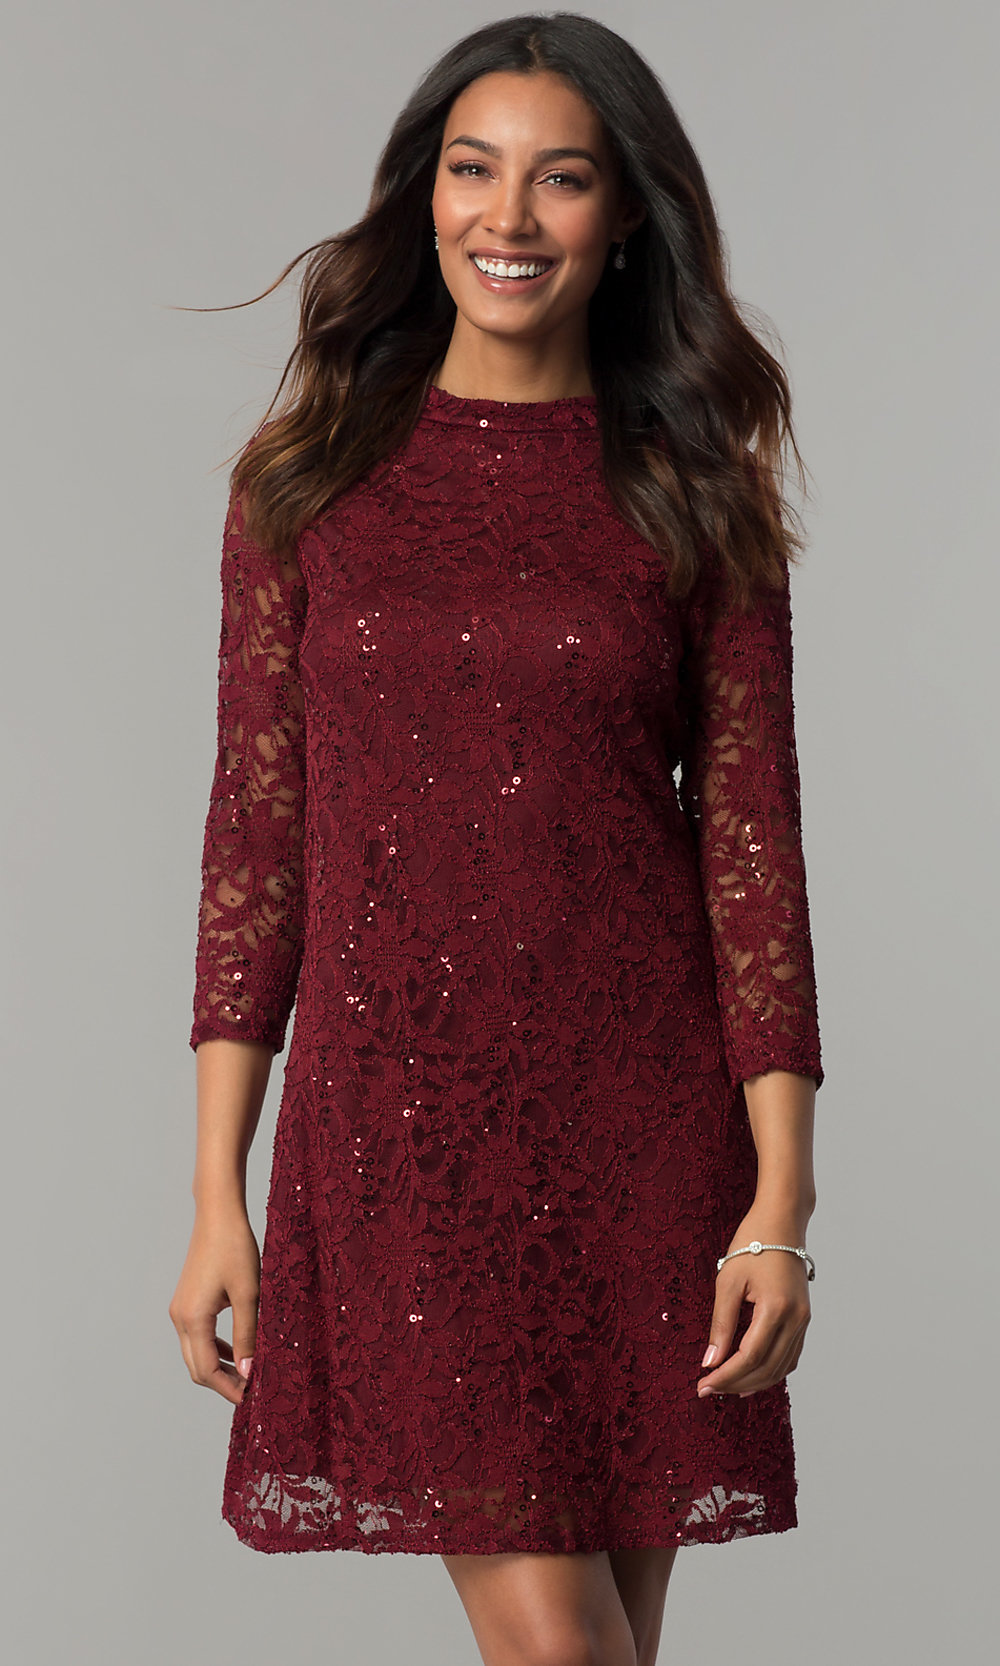 Tiana B Sequined Lace Short Holiday Party Dress